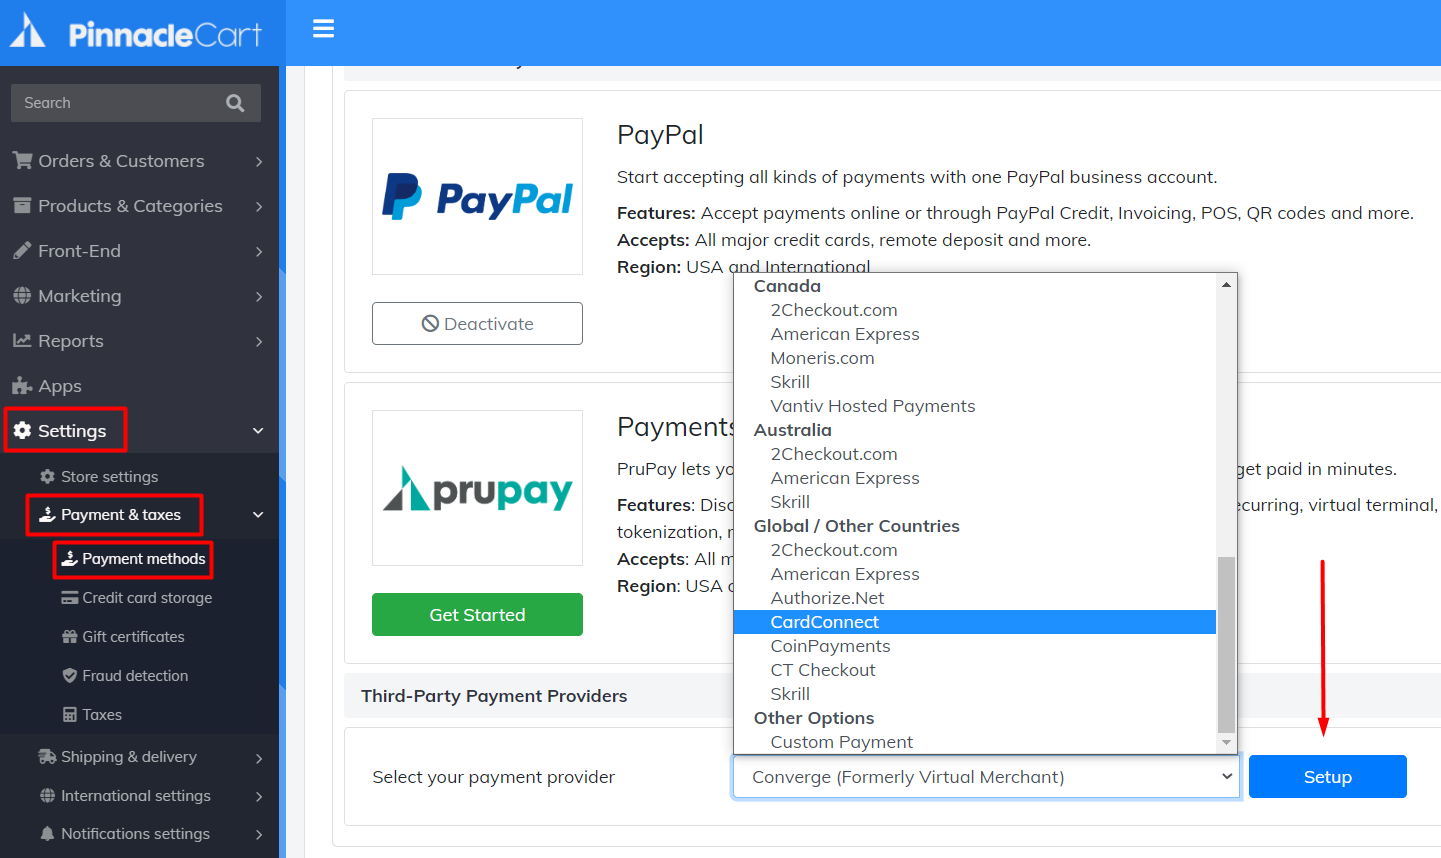 cardconnect payment method set up